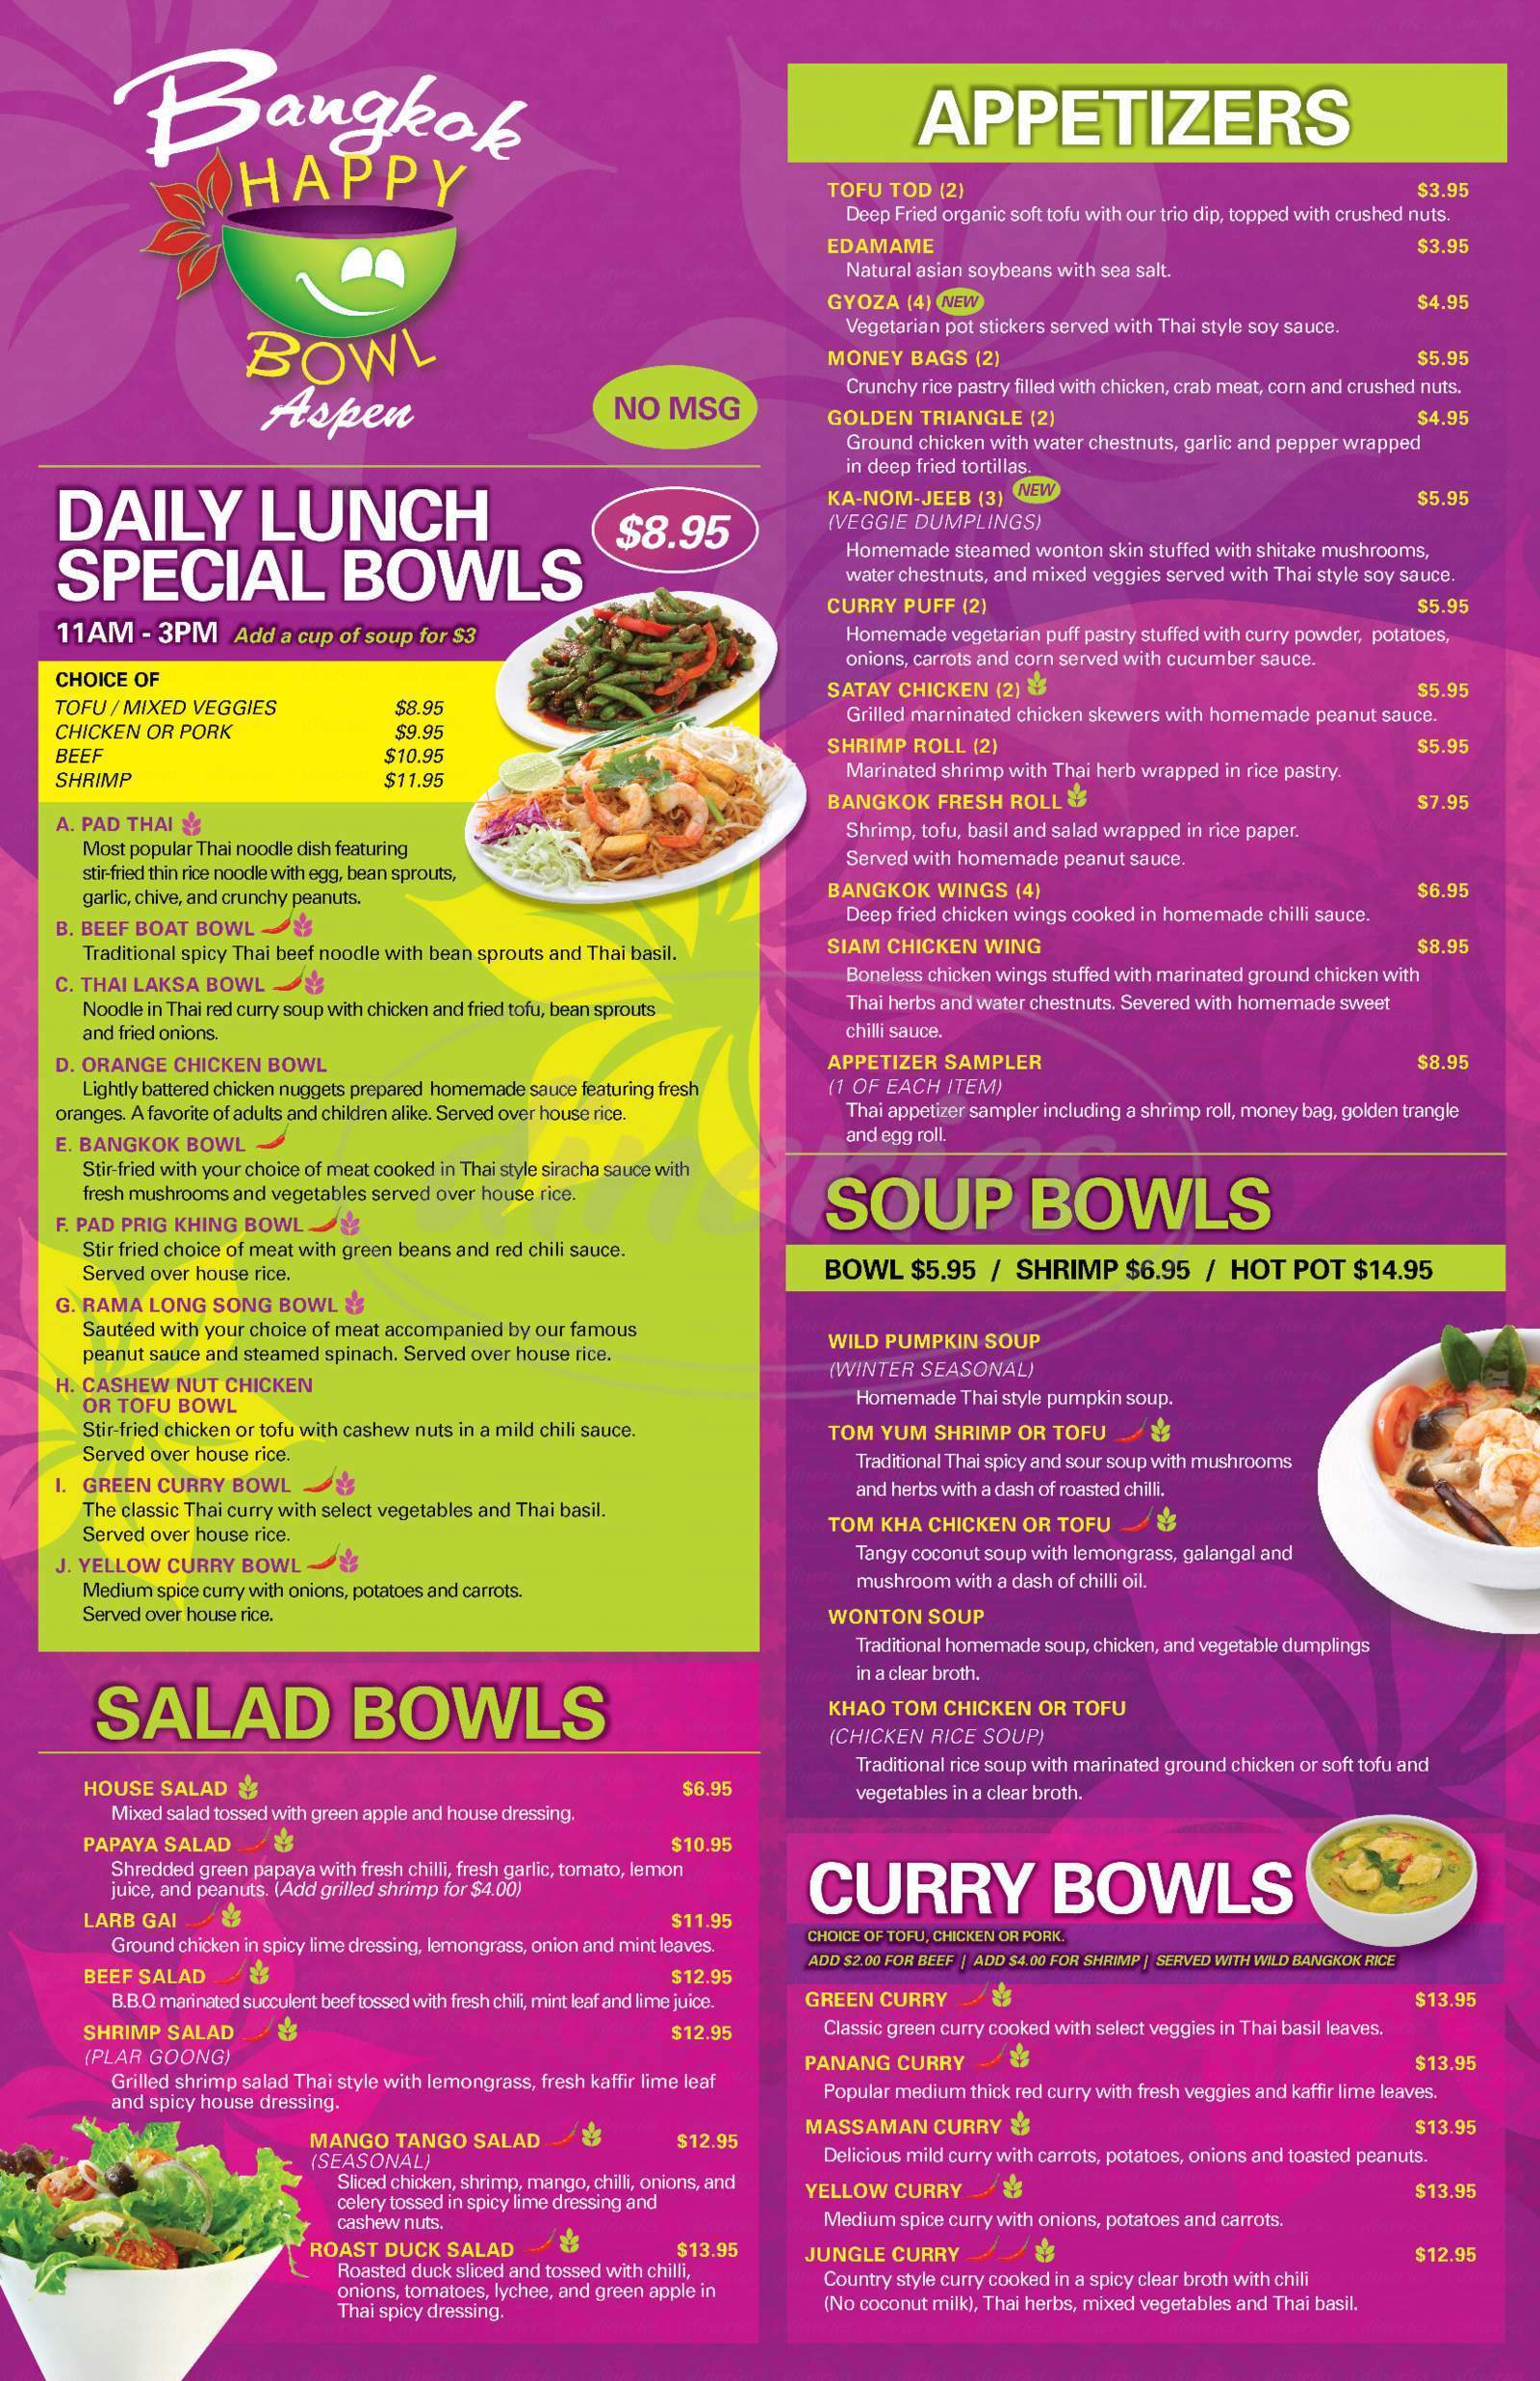 menu for Bangkok Happy Bowl